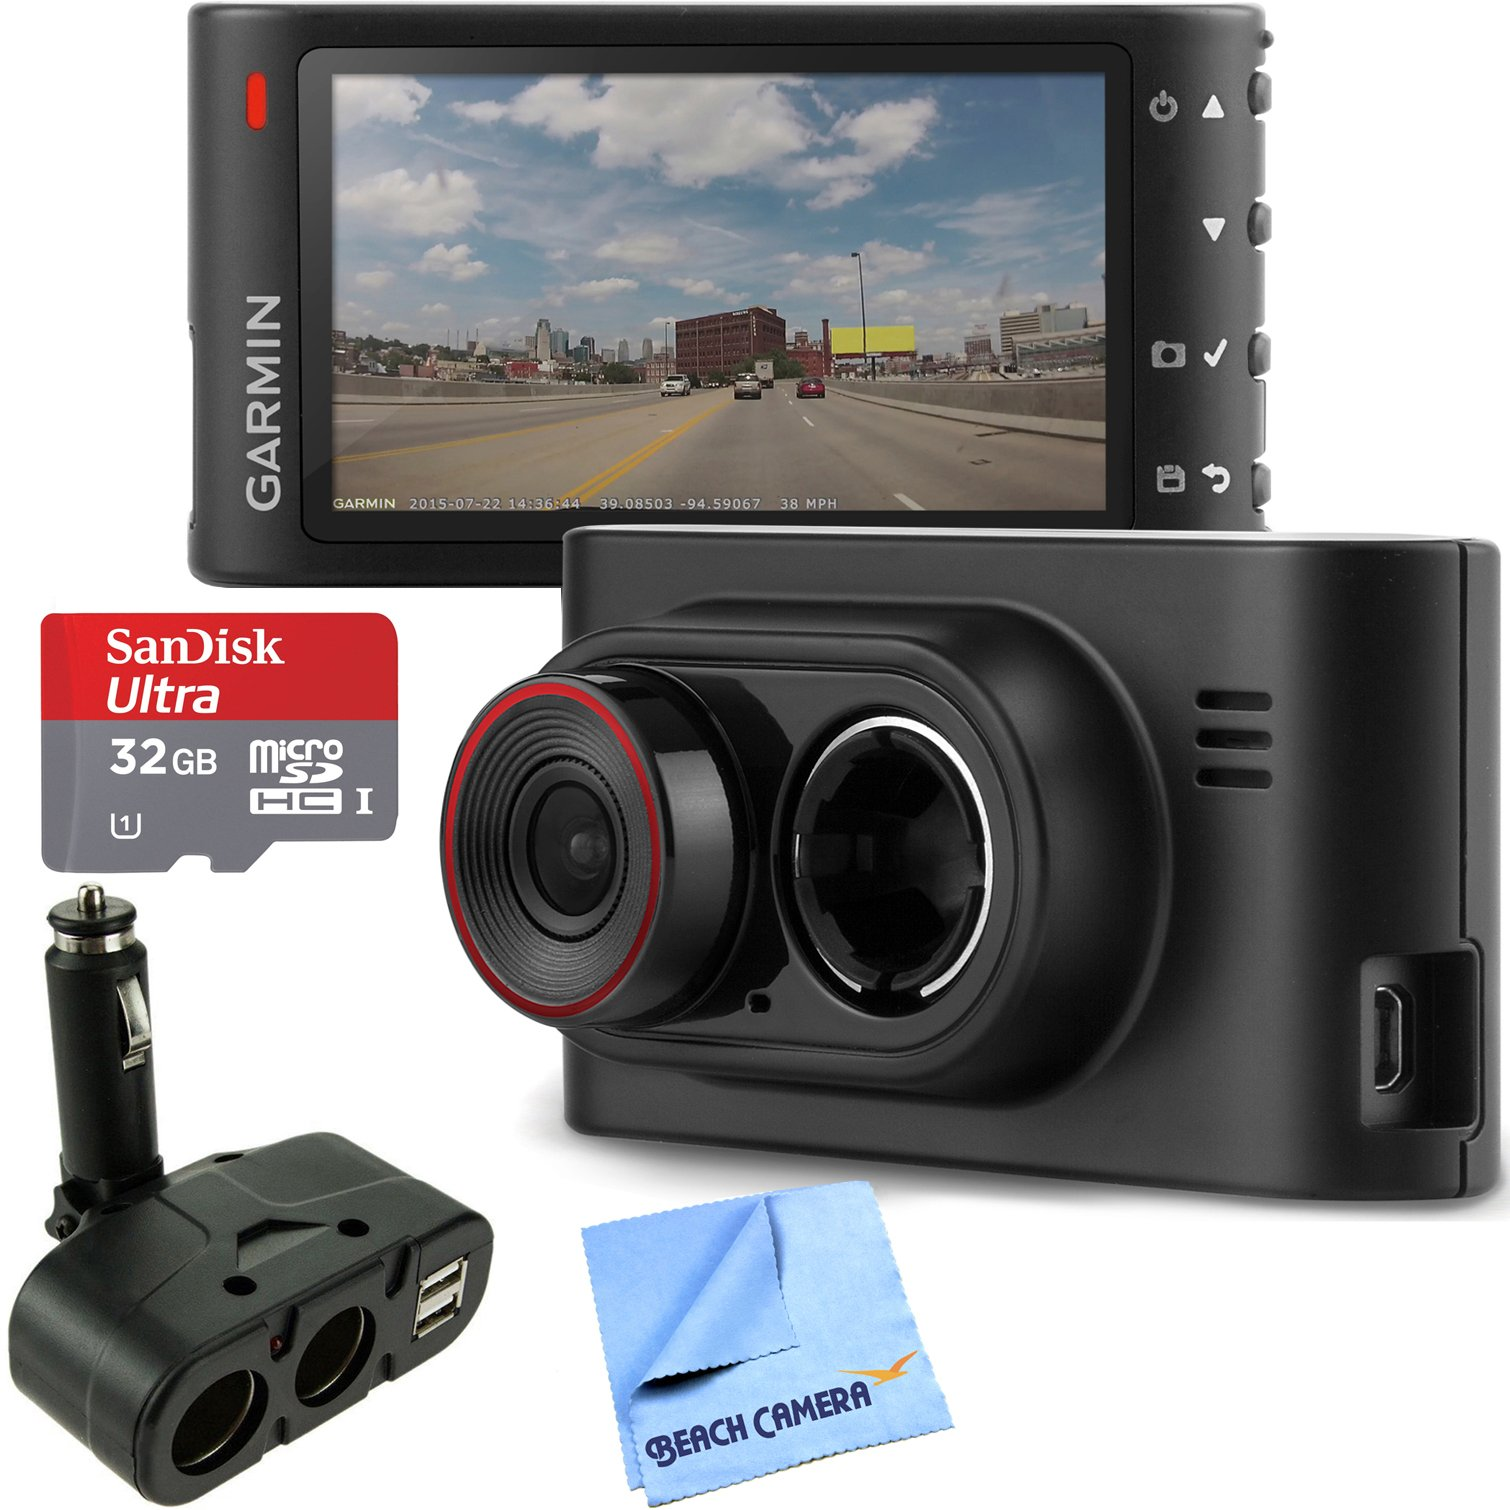 Garmin Dash Cam 35 Standalone HD Driving Recorder with GPS 32GB microSD Card Bundle includes Dash Cam 35, 32GB microSD Memory Card, Dual 12V Car Charger and Micro Fiber Cloth